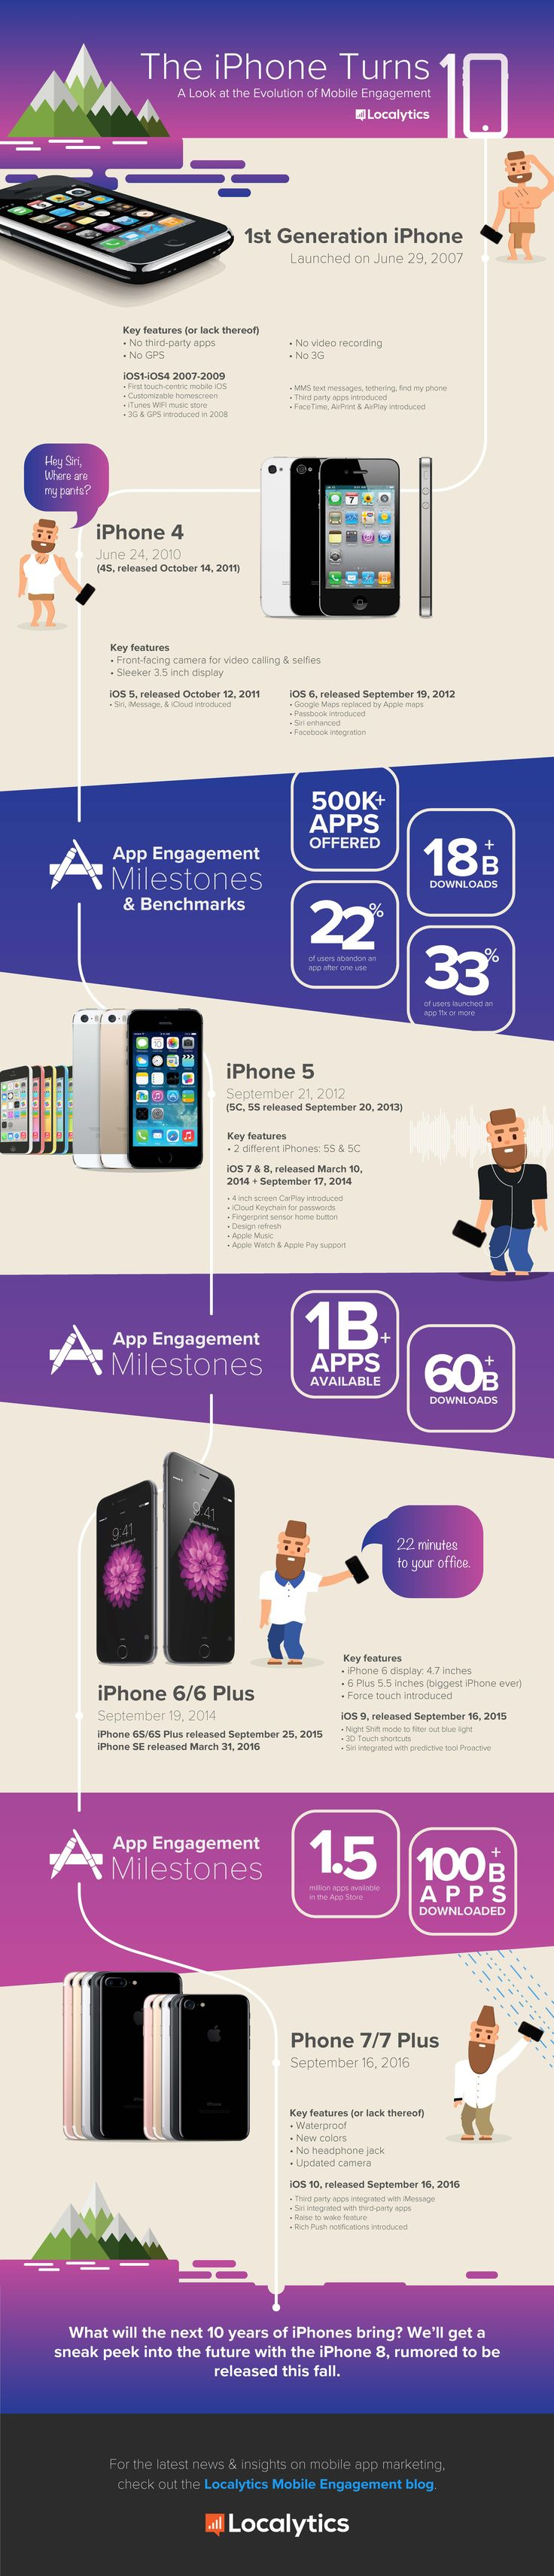 The iPhone Turns 10 How Mobile Engagement Has Evolved Since 2007 [Infographic]